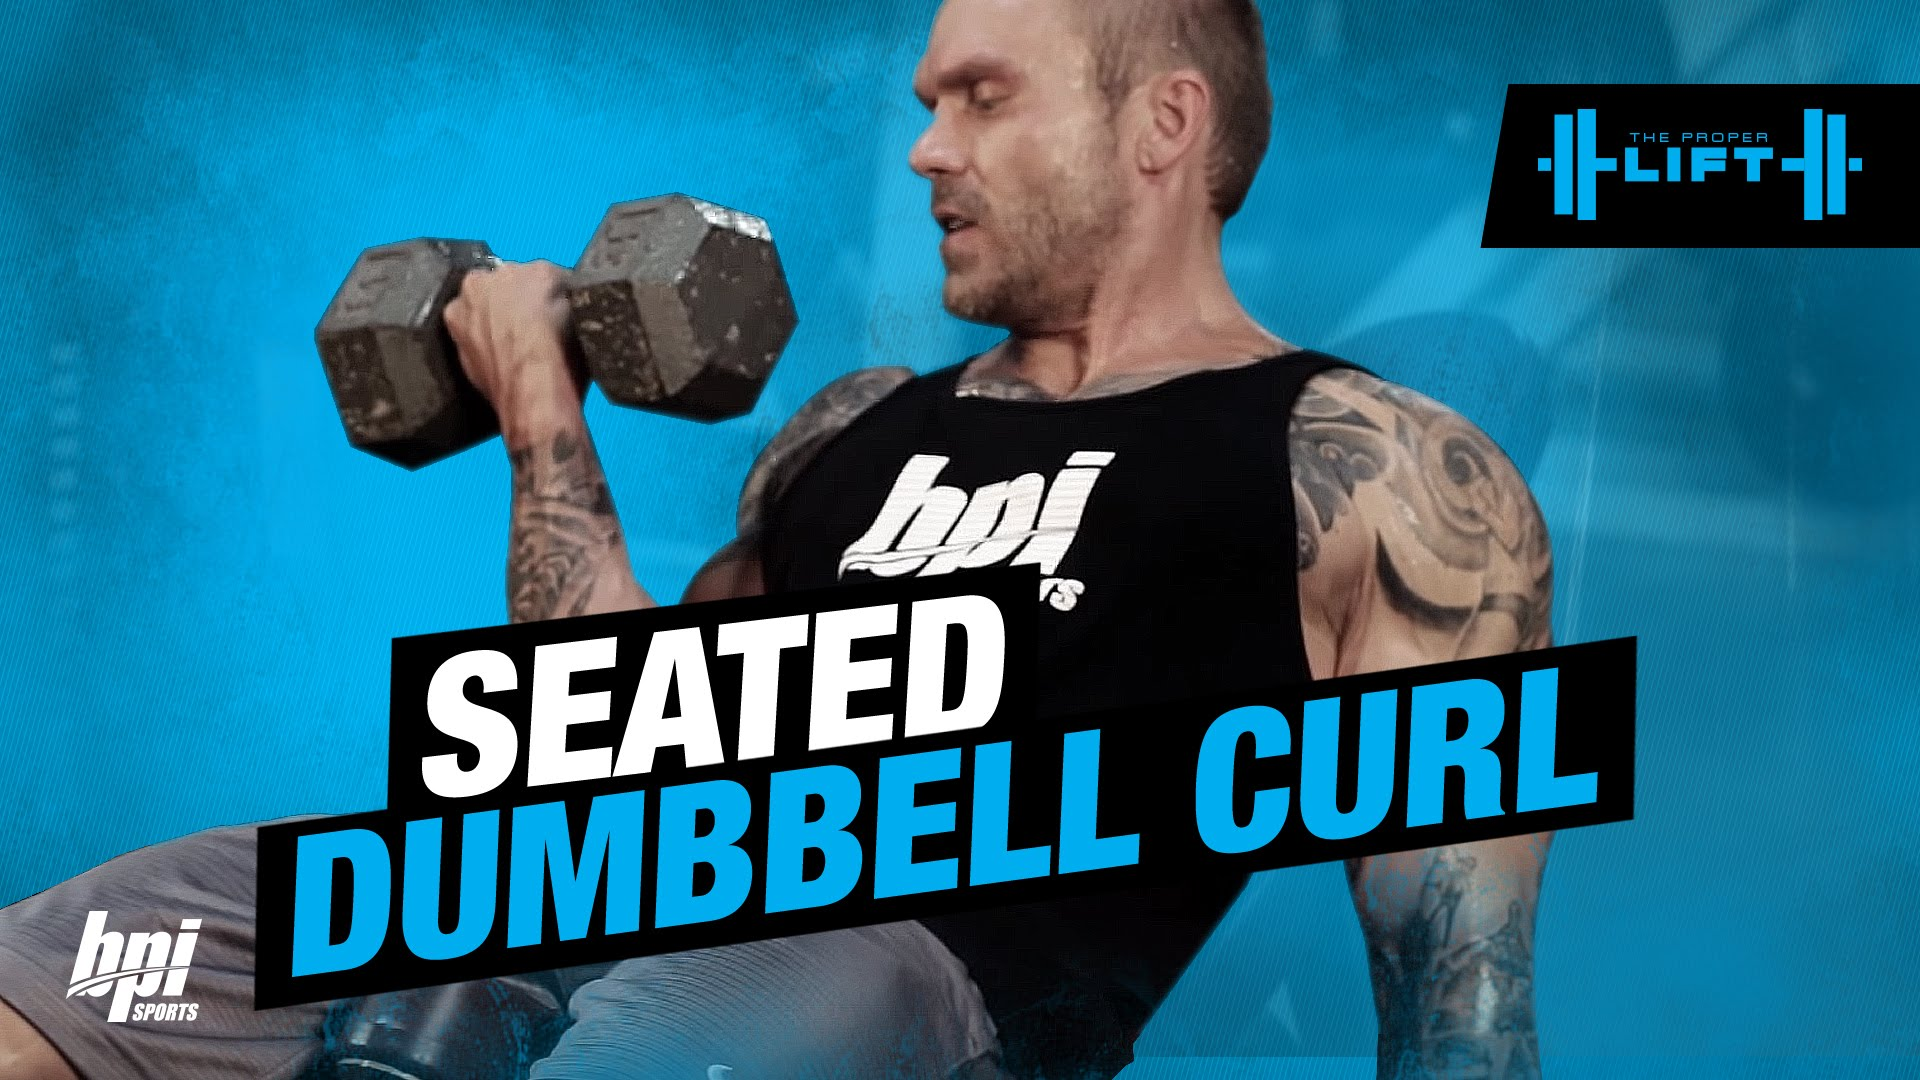 Seated-Dumbbell-Curl-Exercise-The-Proper-Lift-BPI-Sports-1